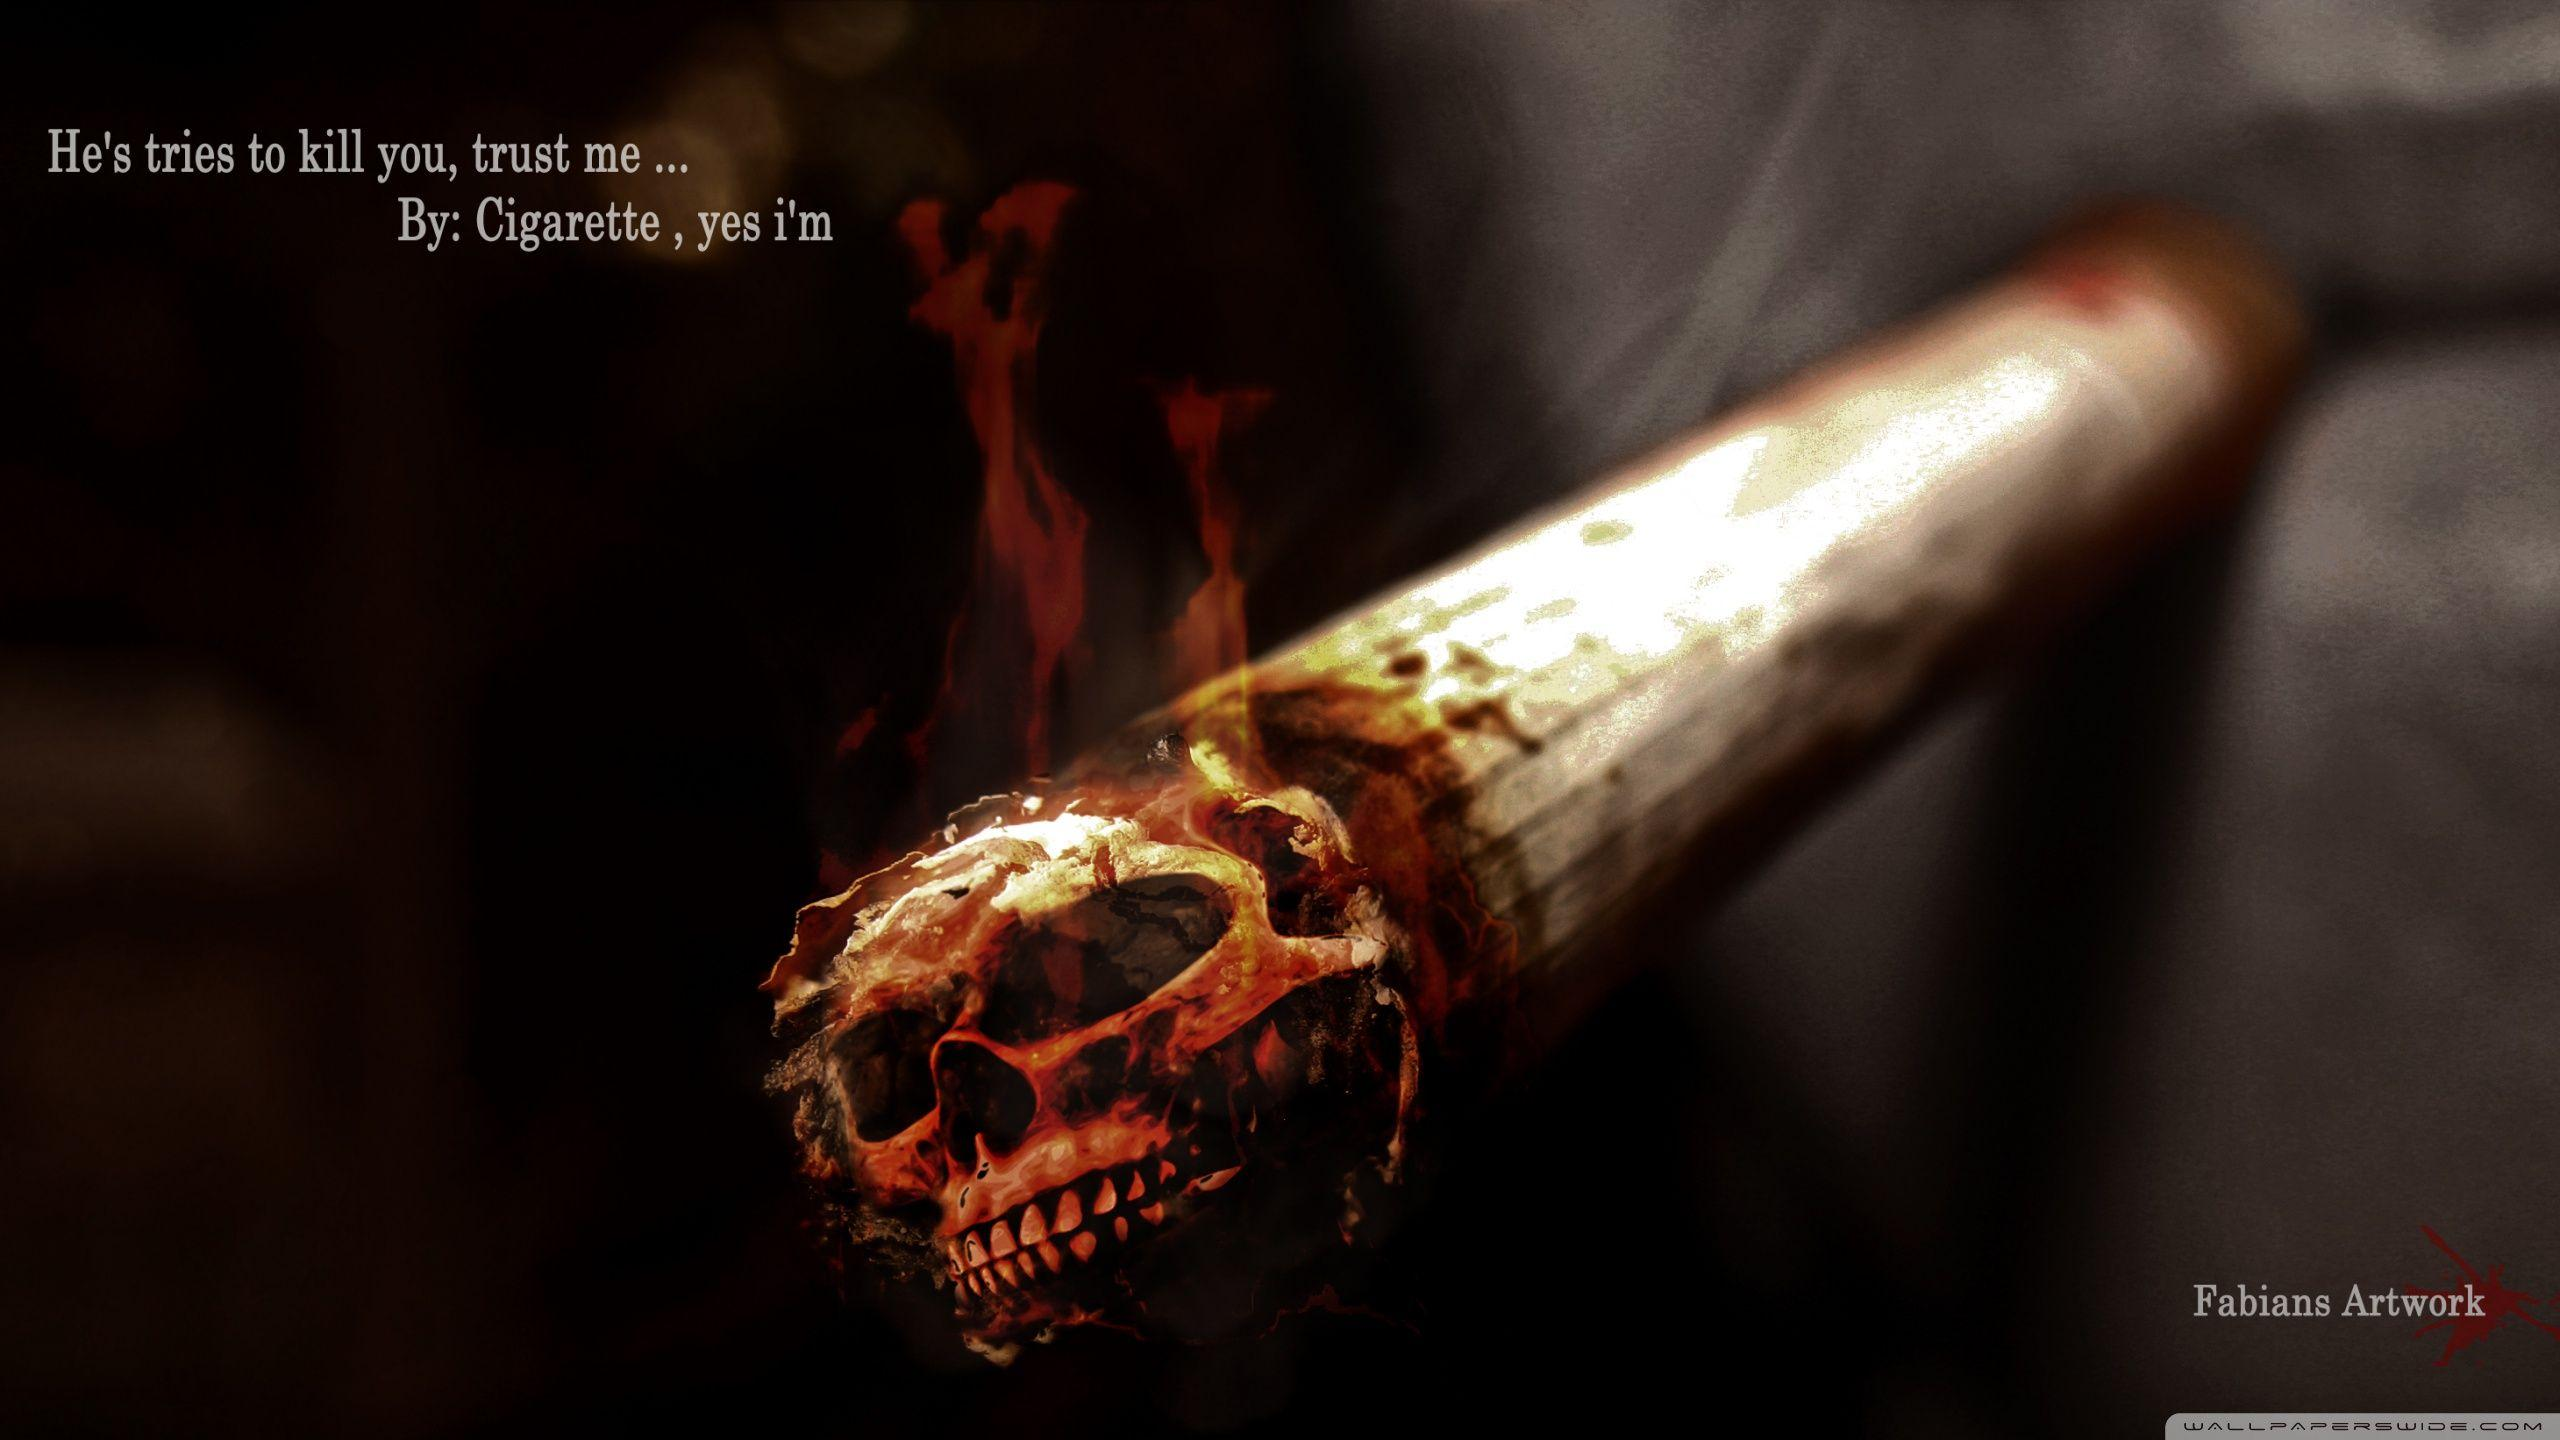 Smoking hd wallpapers wallpaper cave - Dark smoking wallpapers ...